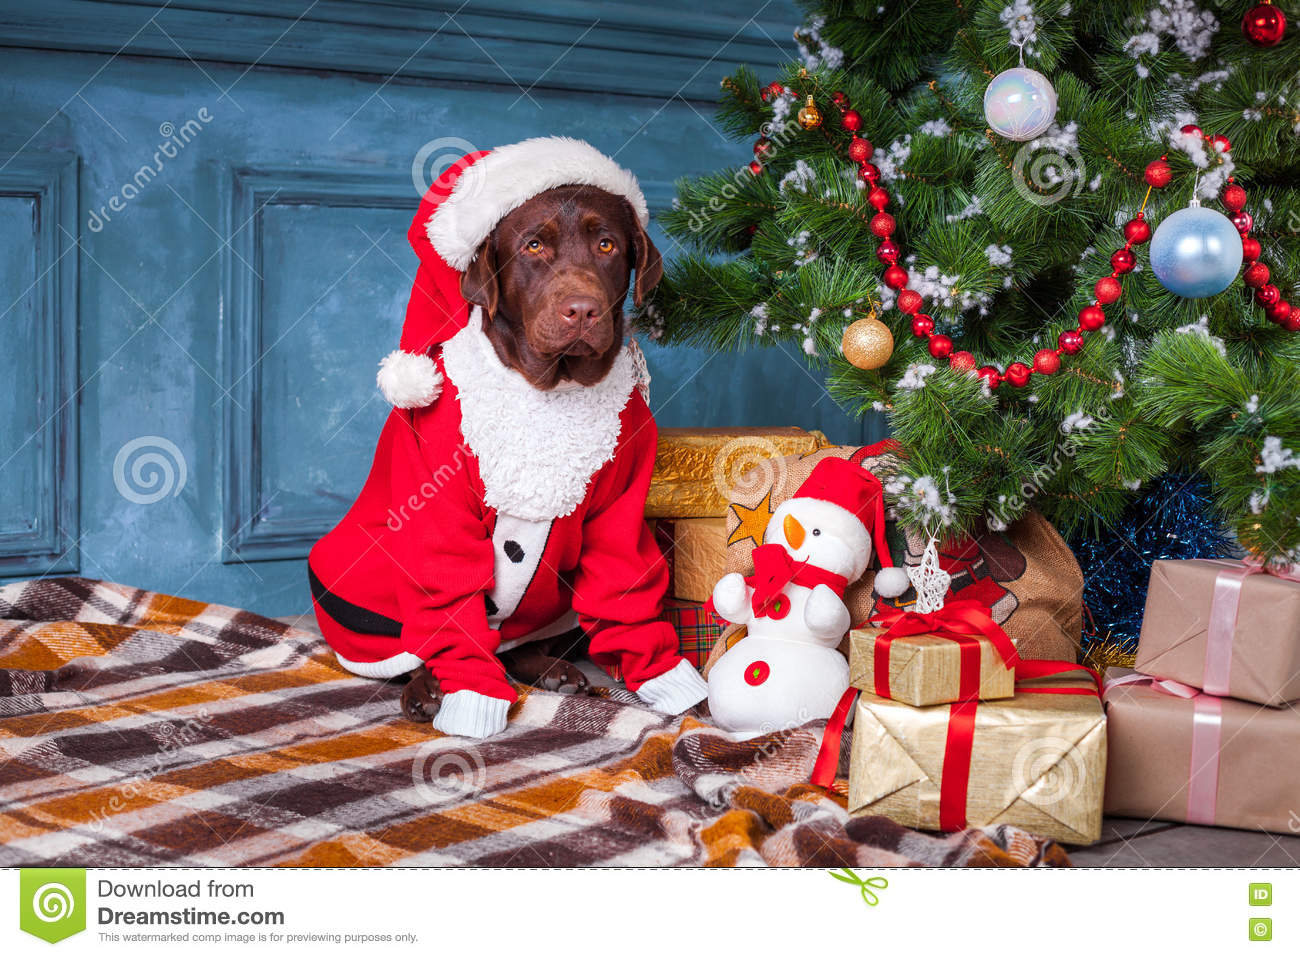 the black labrador retriever sitting with gifts on christmas decorations background